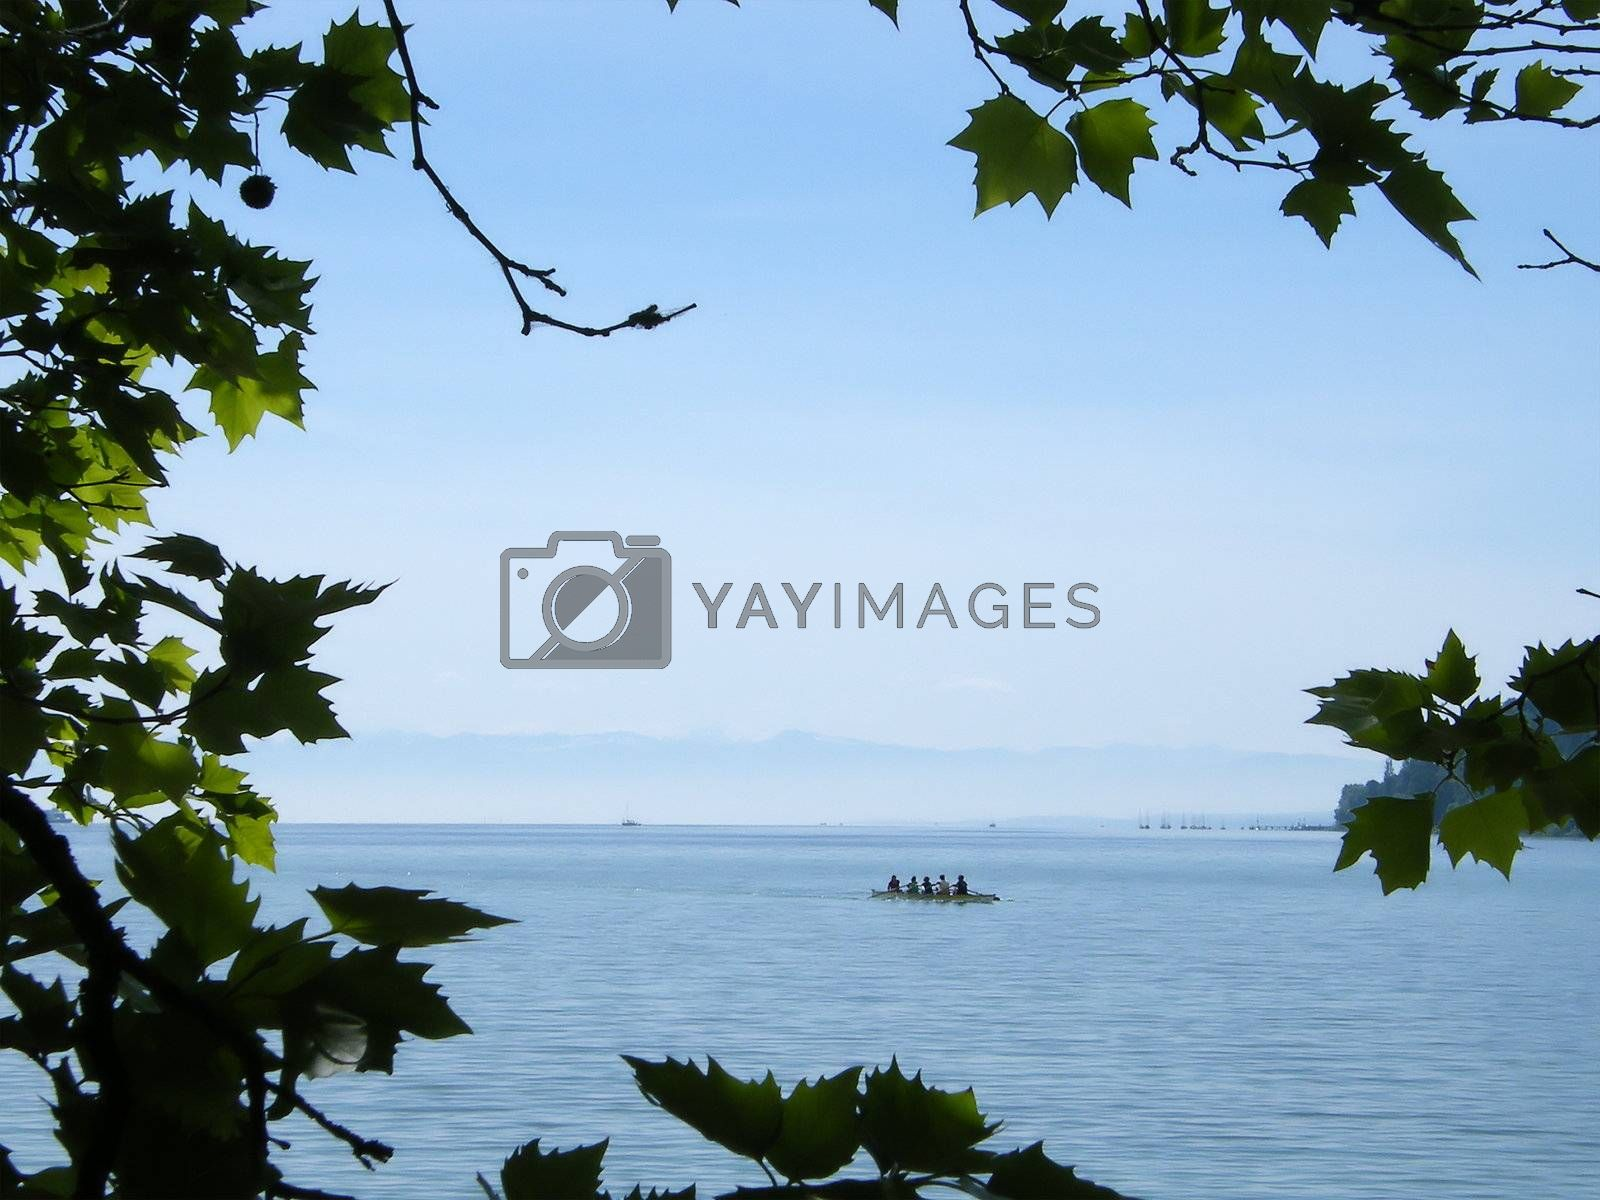 The sea, the mountains, the boat and the ships as a summer background.